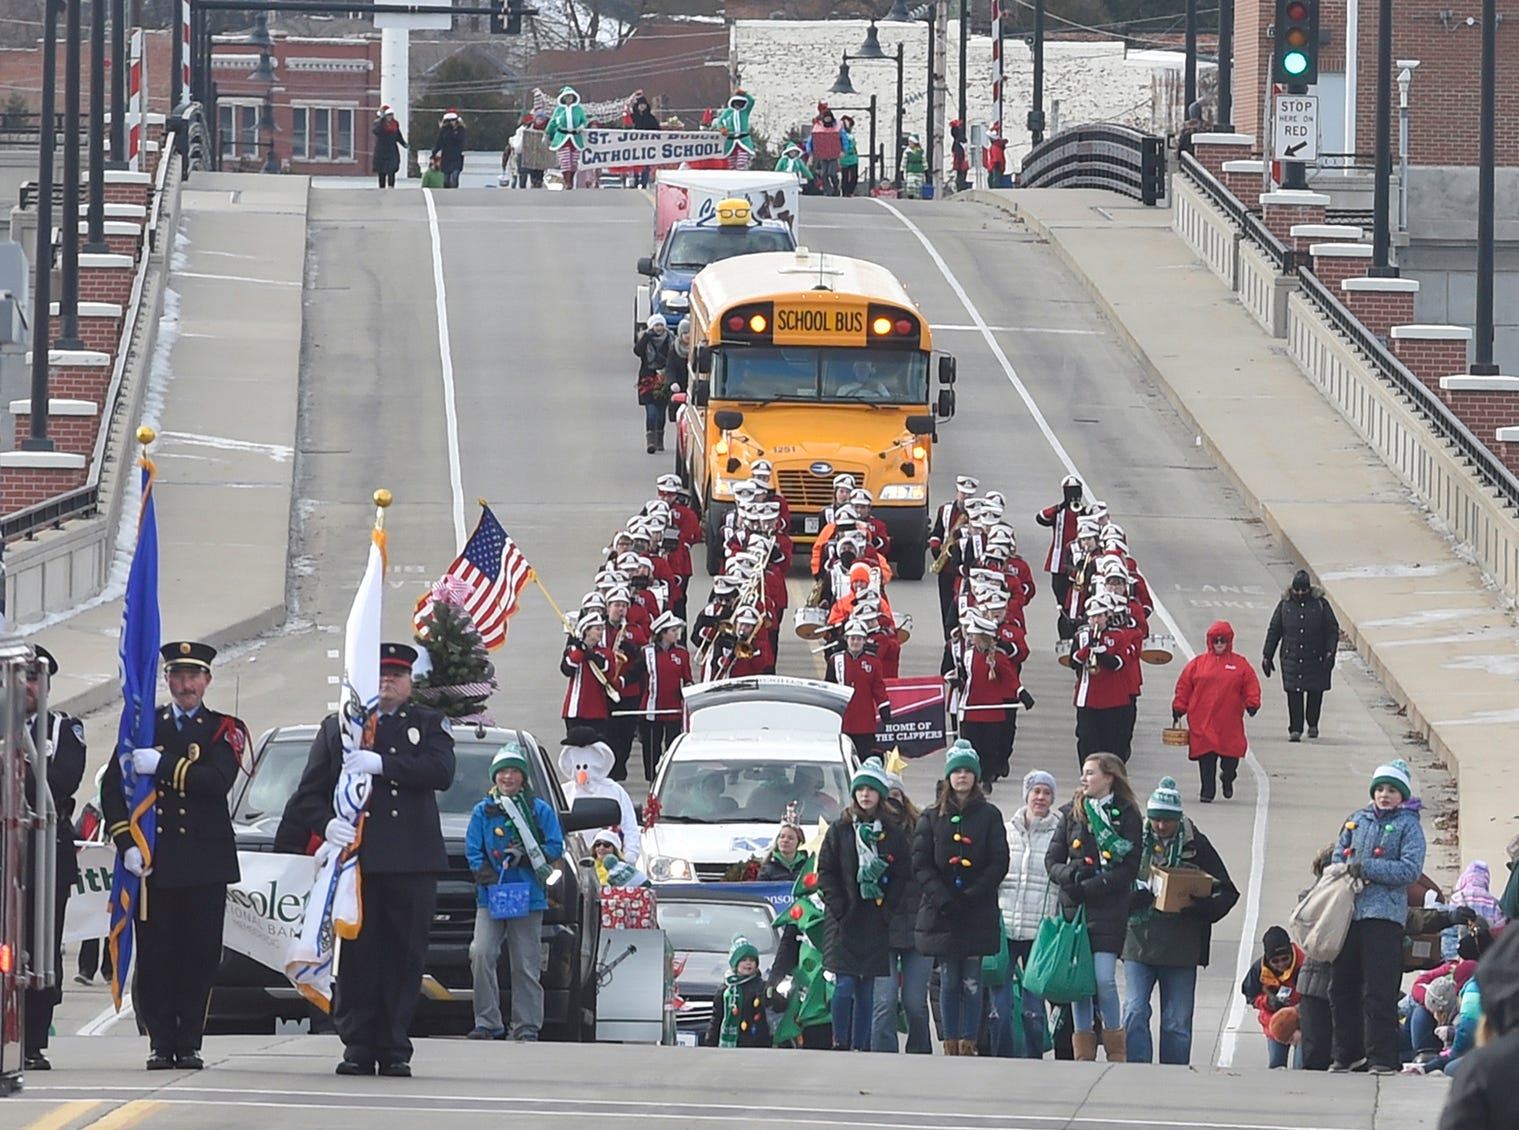 Sturgeon Bay's Christmas Parade travels across the Maple-Oregon Street Bridge on Saturday, Nov. 17, 2018. Hosted by the Sturgeon Bay Visitor Center, the holiday parade was part of the city's Christmas by the Bay celebration Nov. 16-18 which kicked off with the lighting of the city Christmas Tree on Friday night. To see more photos of the parade, visit: www.doorcountyadvocate.com. Tina M. Gohr/USA TODAY NETWORK-Wisconsin